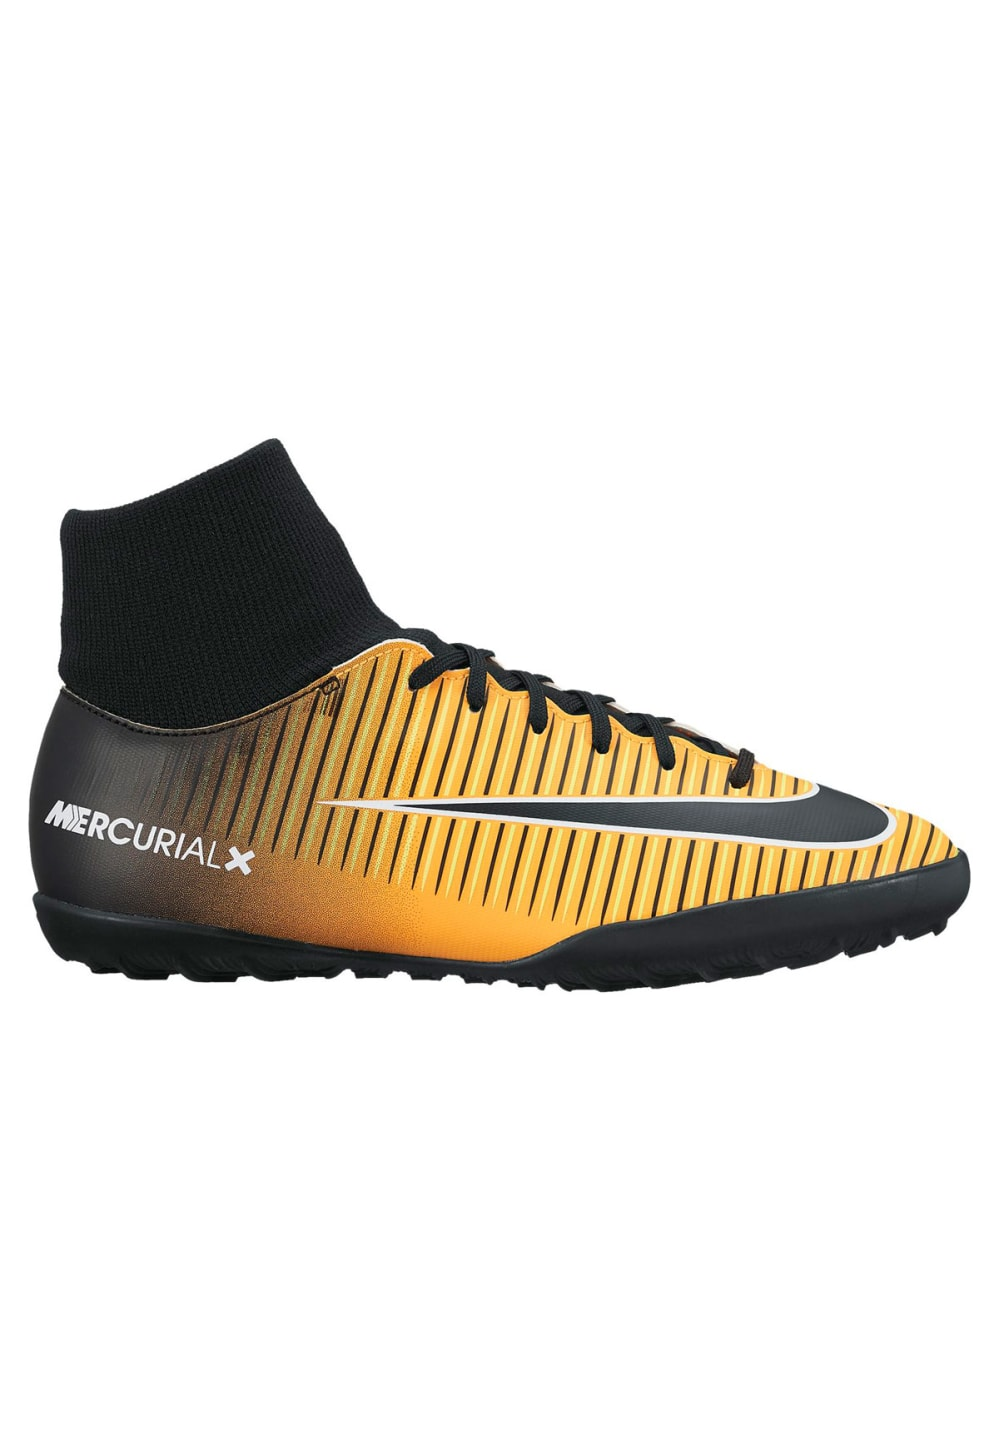 sports shoes 4a77a 747eb Nike Mercurial Victory VI CR7 Dynamic Fit TF - Football Shoes - Orange